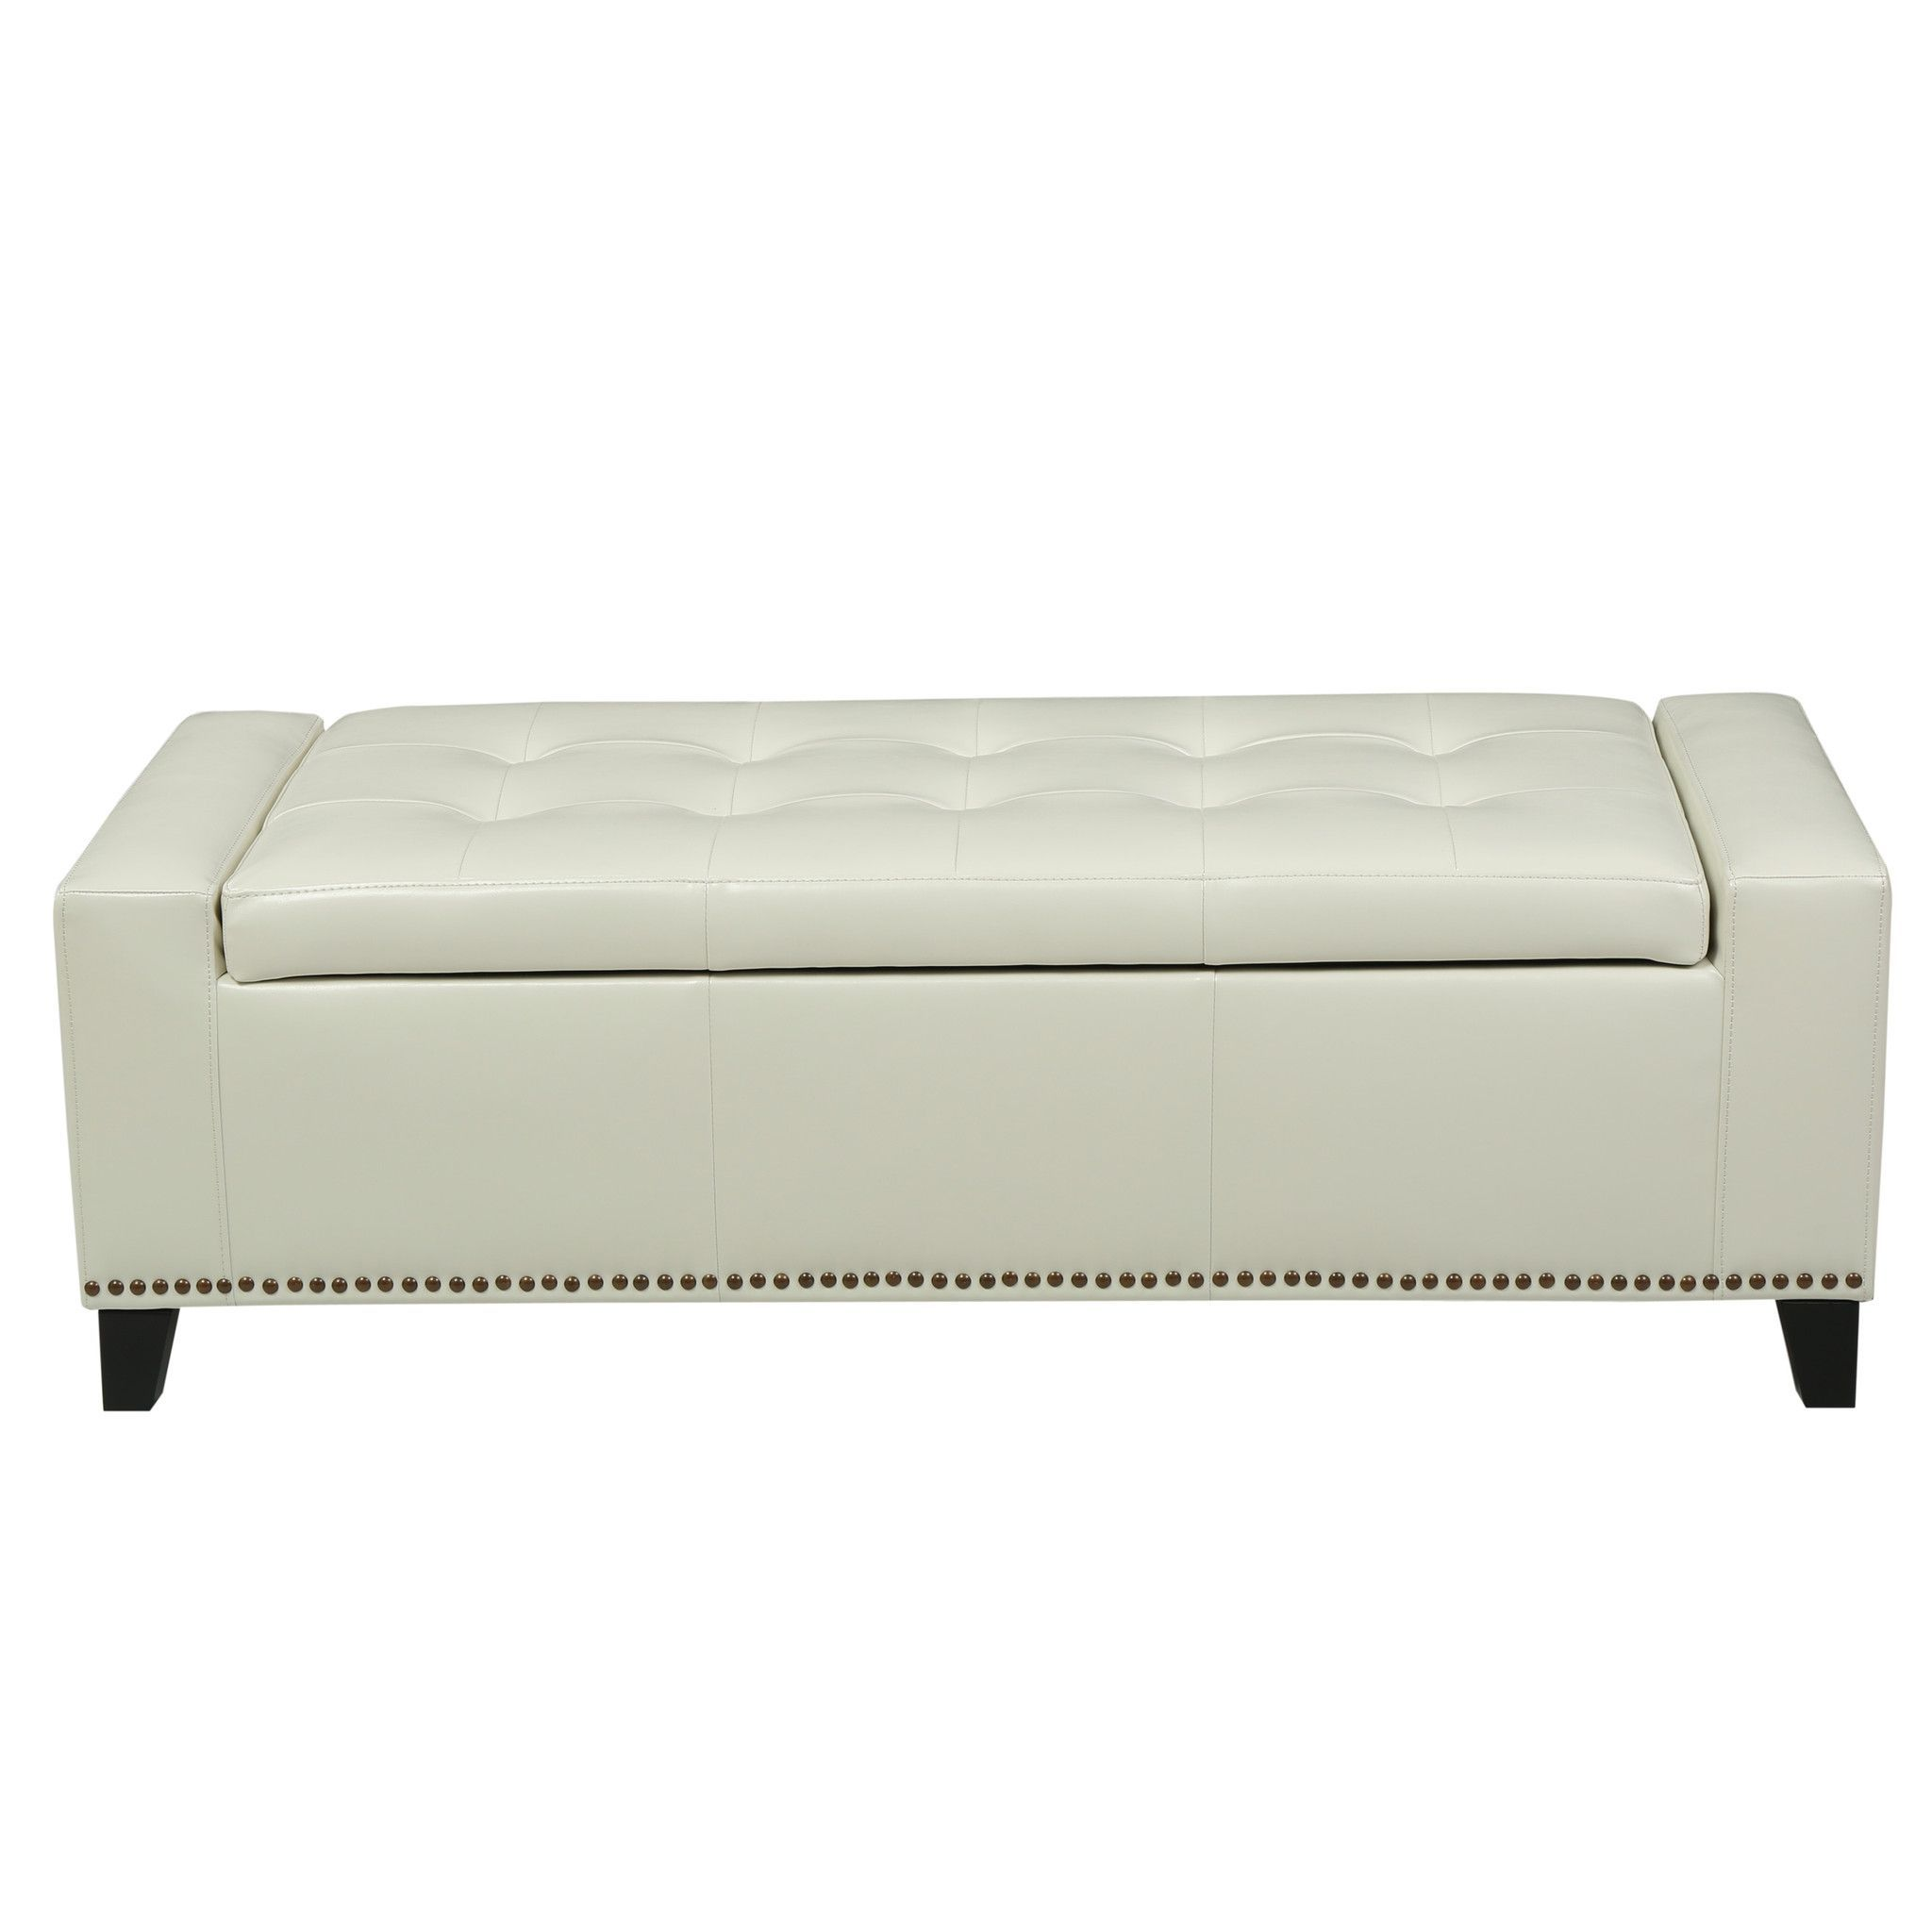 Robin Studded Off-White Leather Storage Ottoman Bench